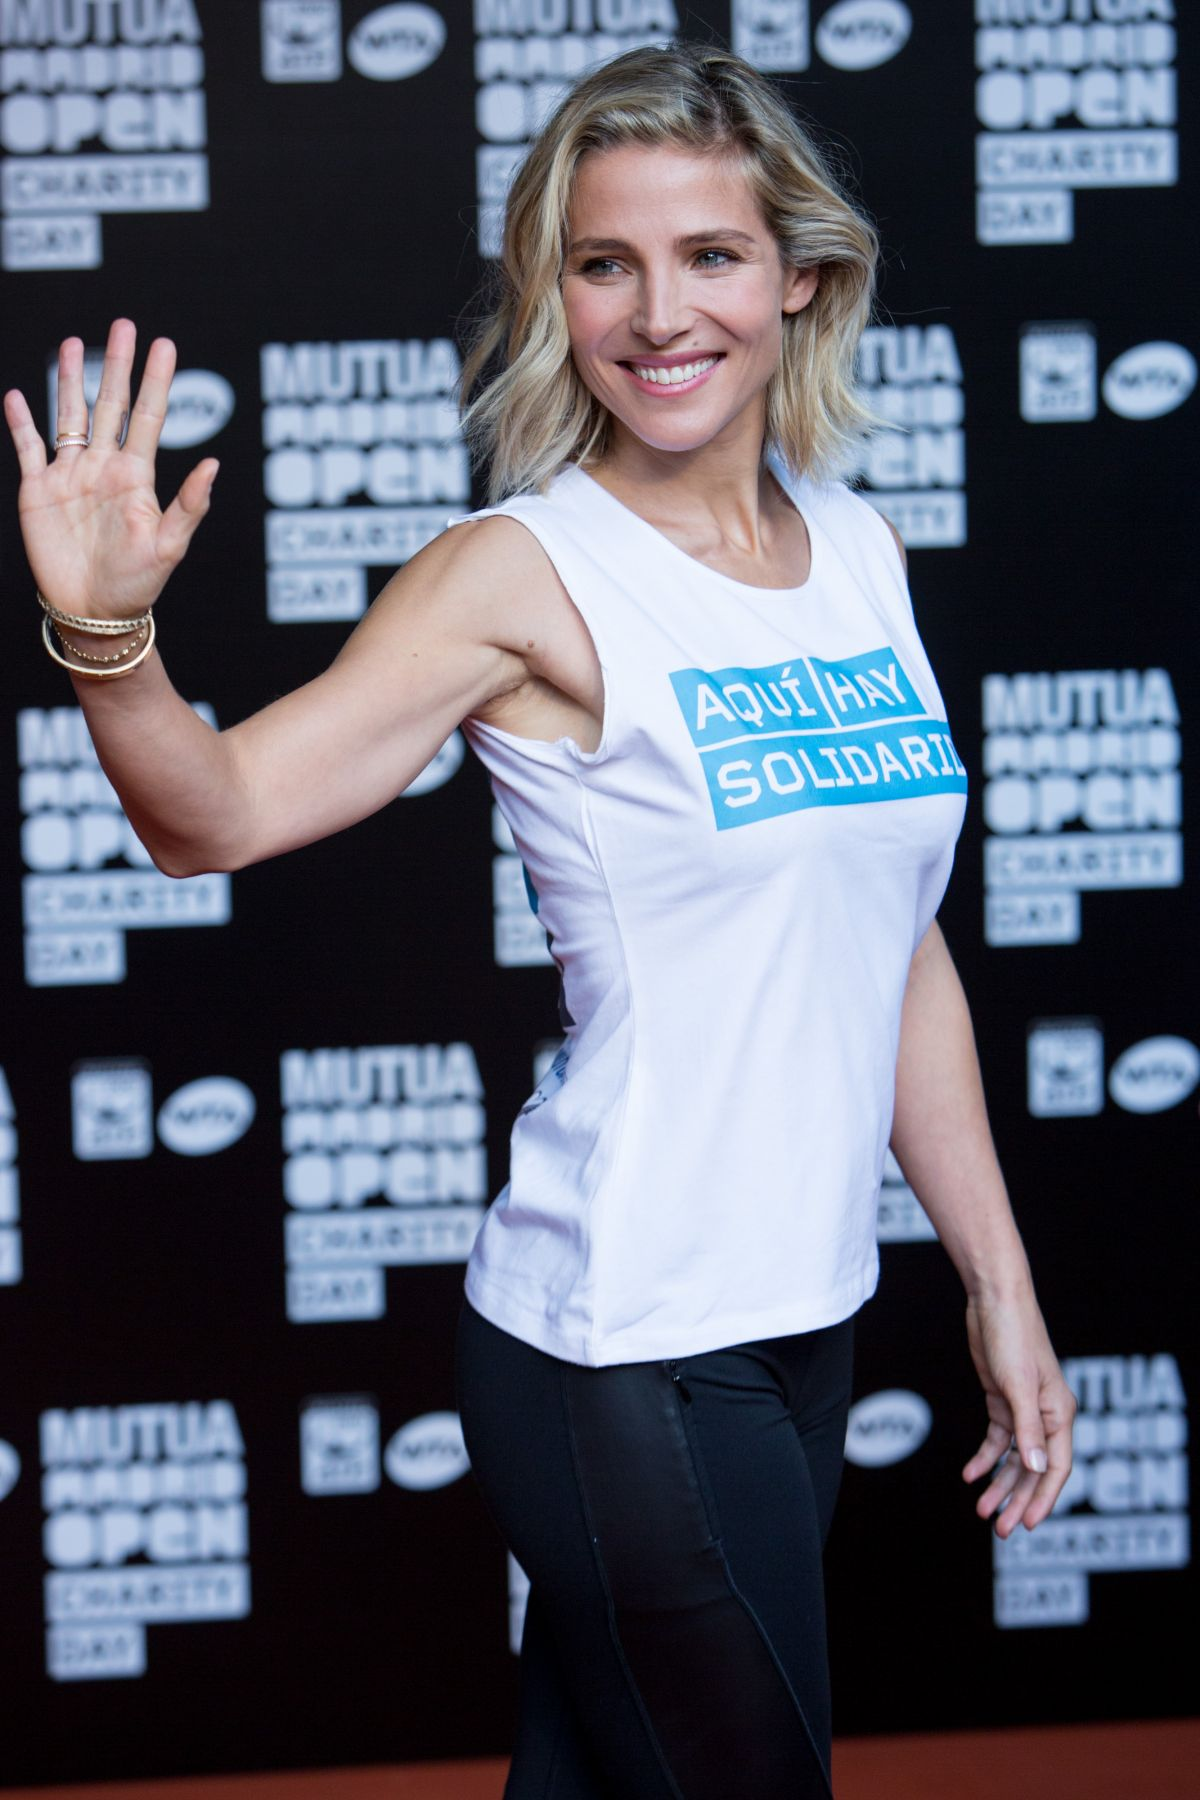 ELSA PATAKY at Charity Day Tennis Tournament in Madrid